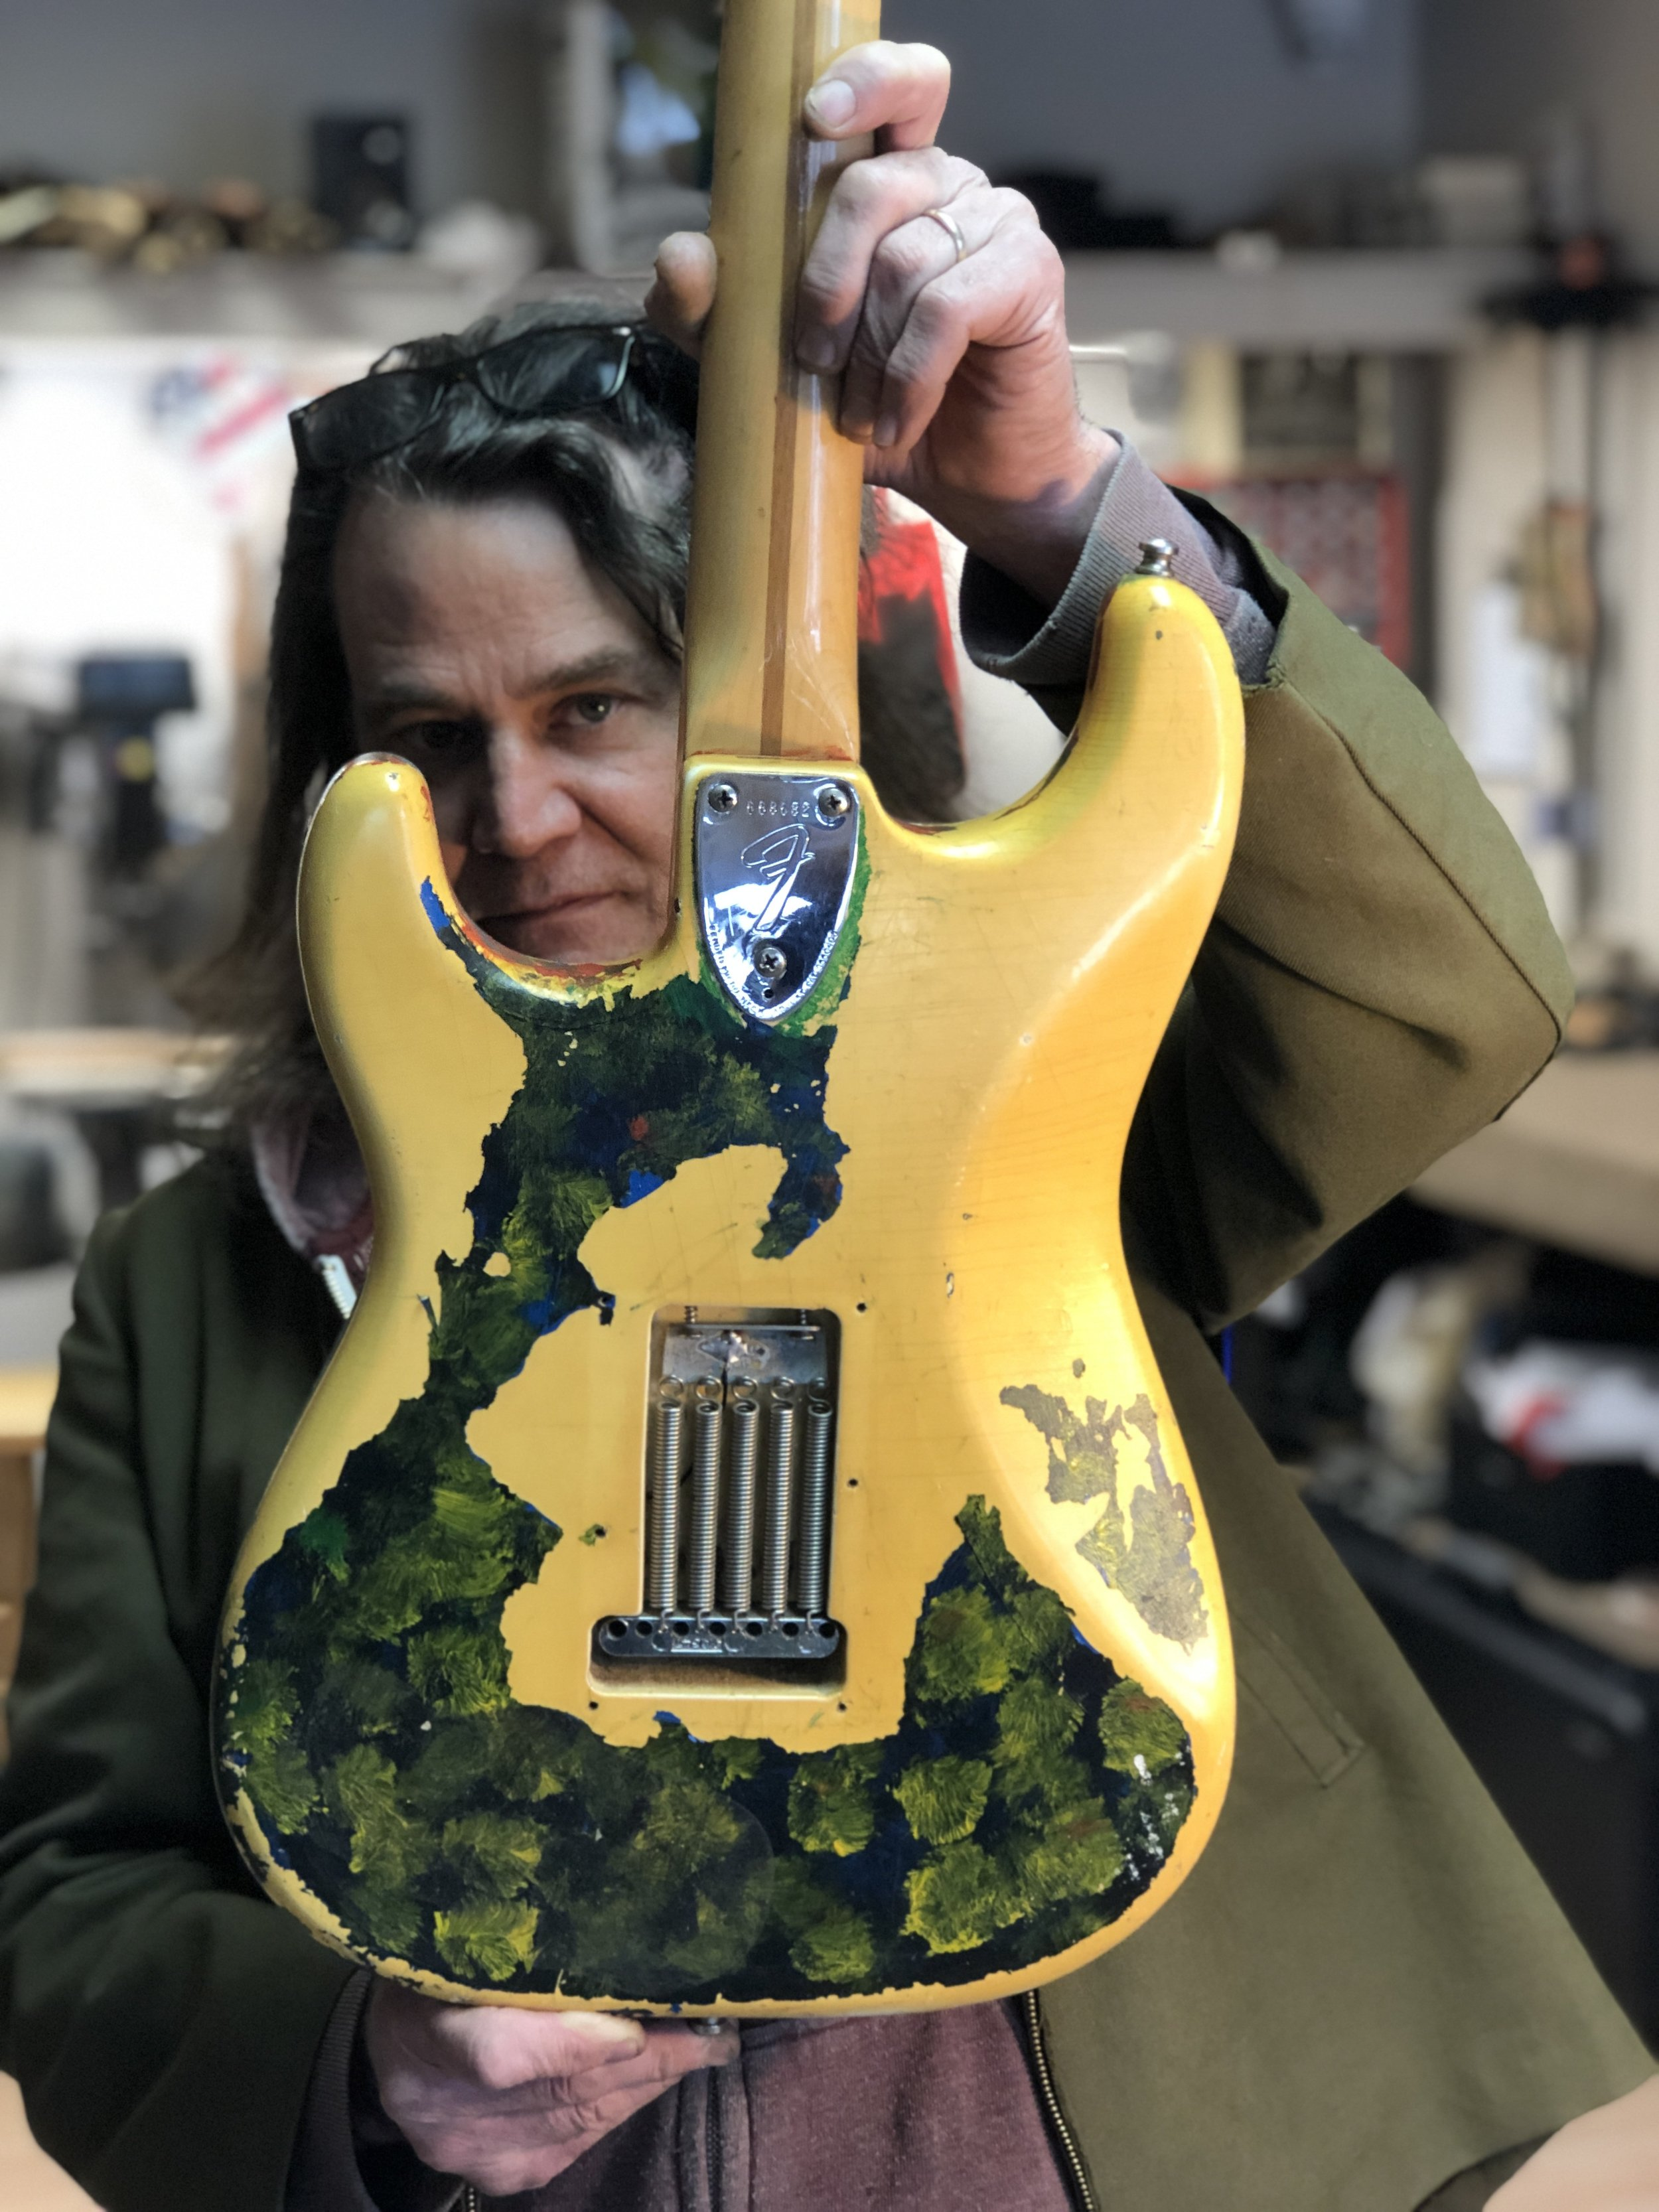 When Billy Corgan of Smashing Pumpkins got his stolen guitar back after 27 years, he took it to Chicago's guitar miracle worker Geoff Benge.